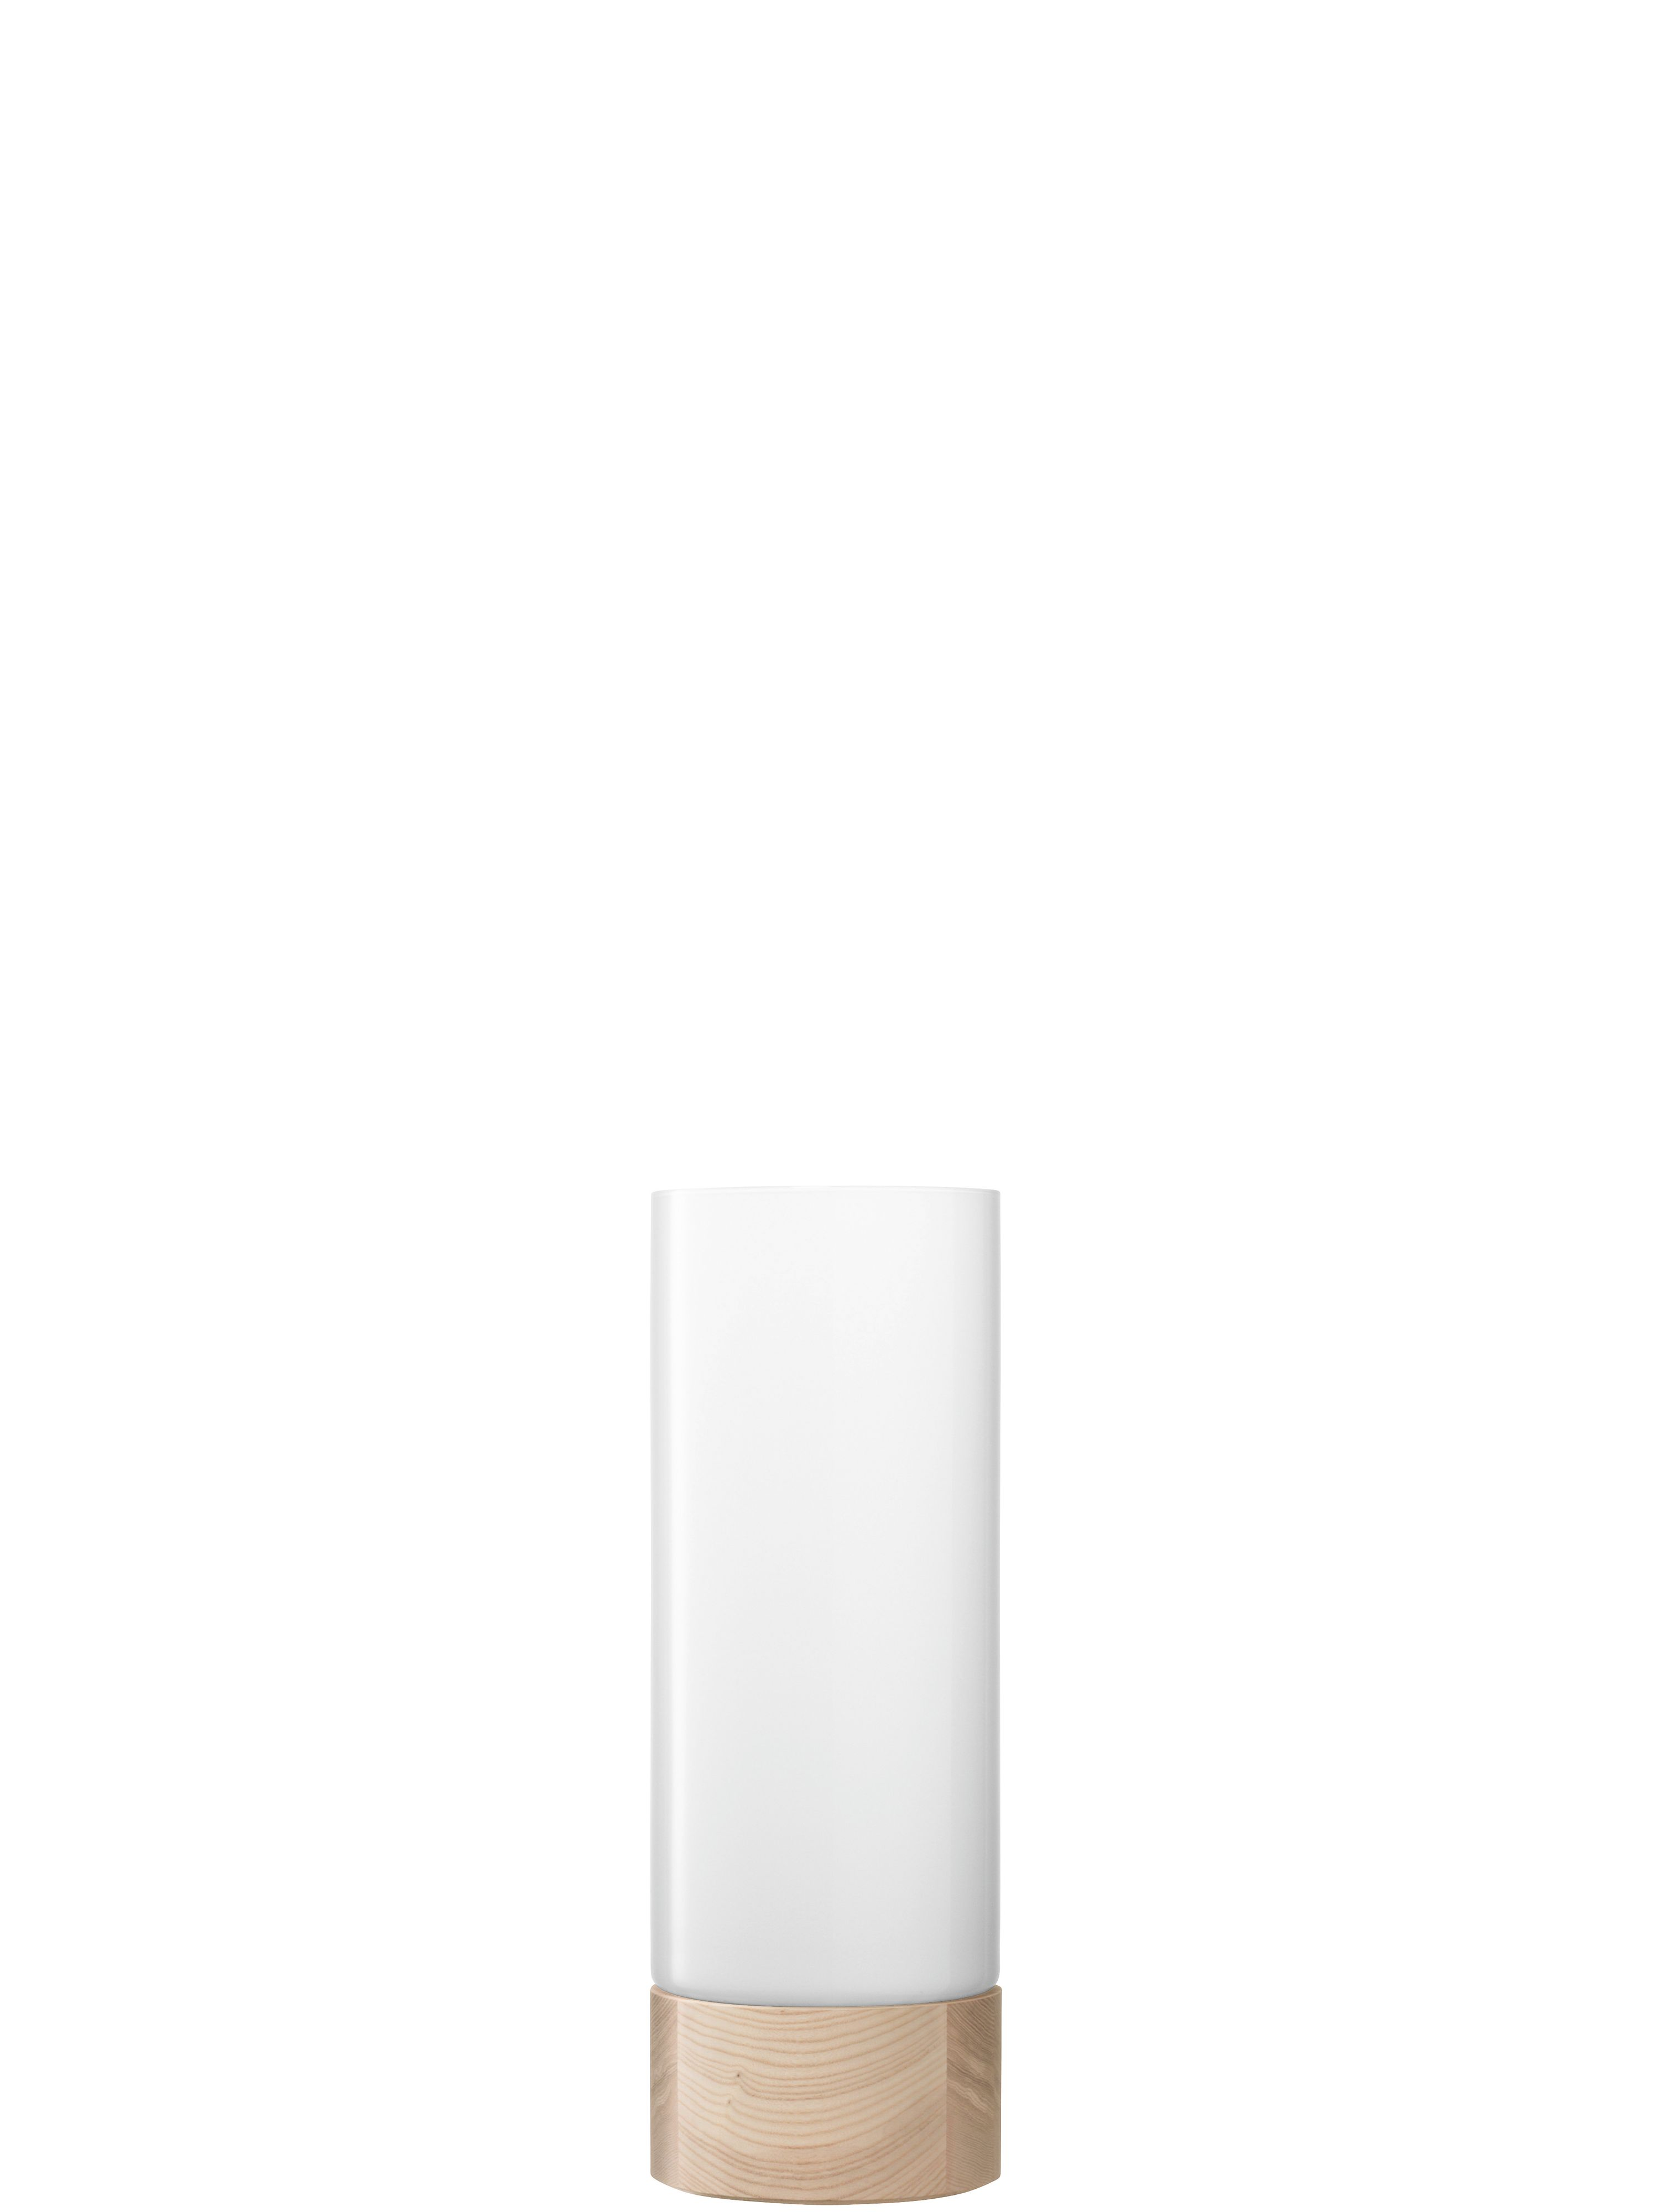 Lotta vase/lantern ash base H62cm in white